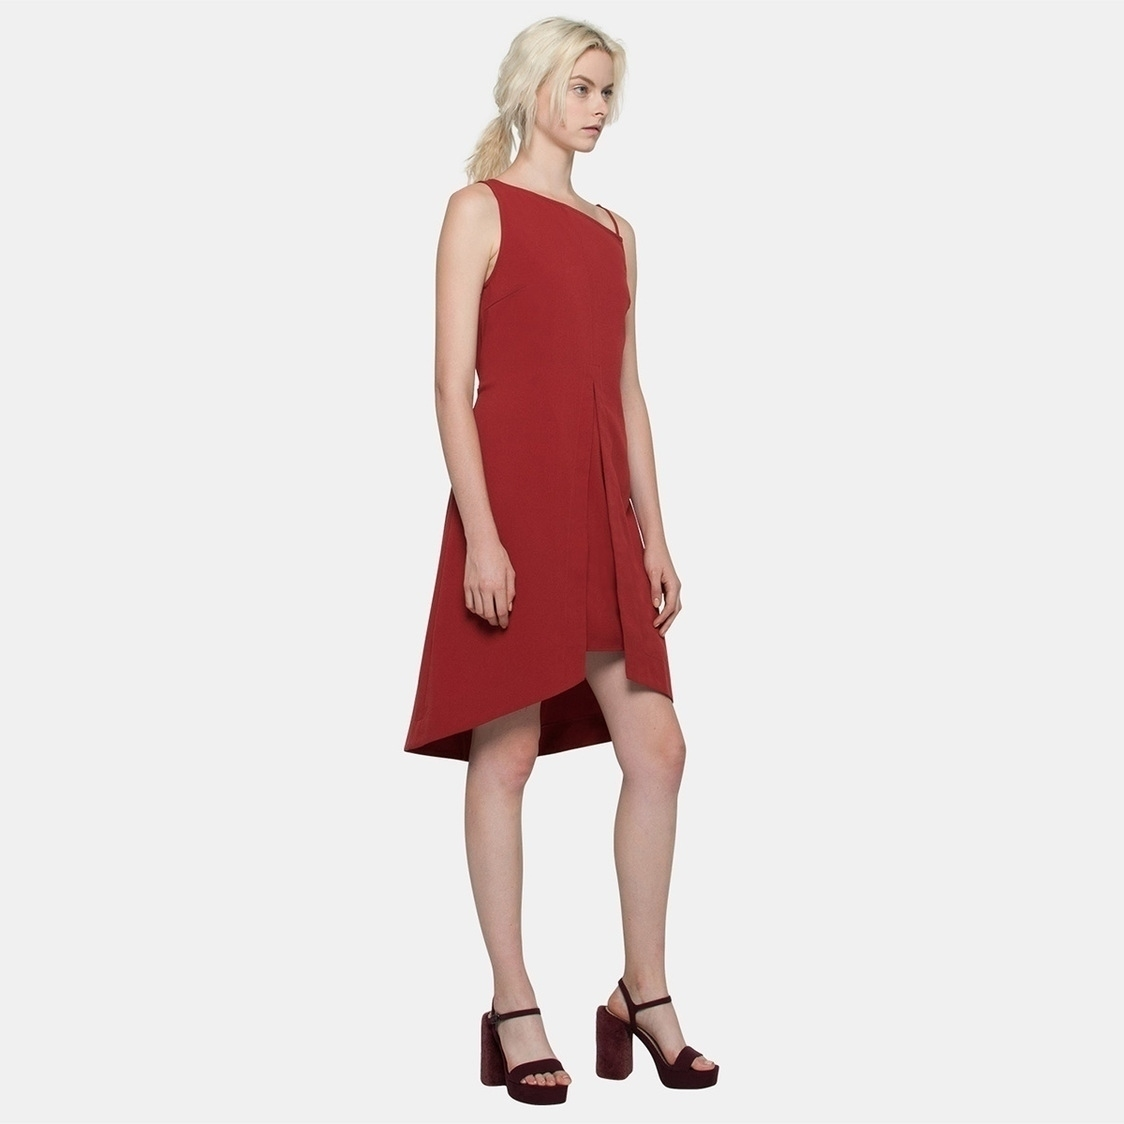 Layered Toga Dress in Red